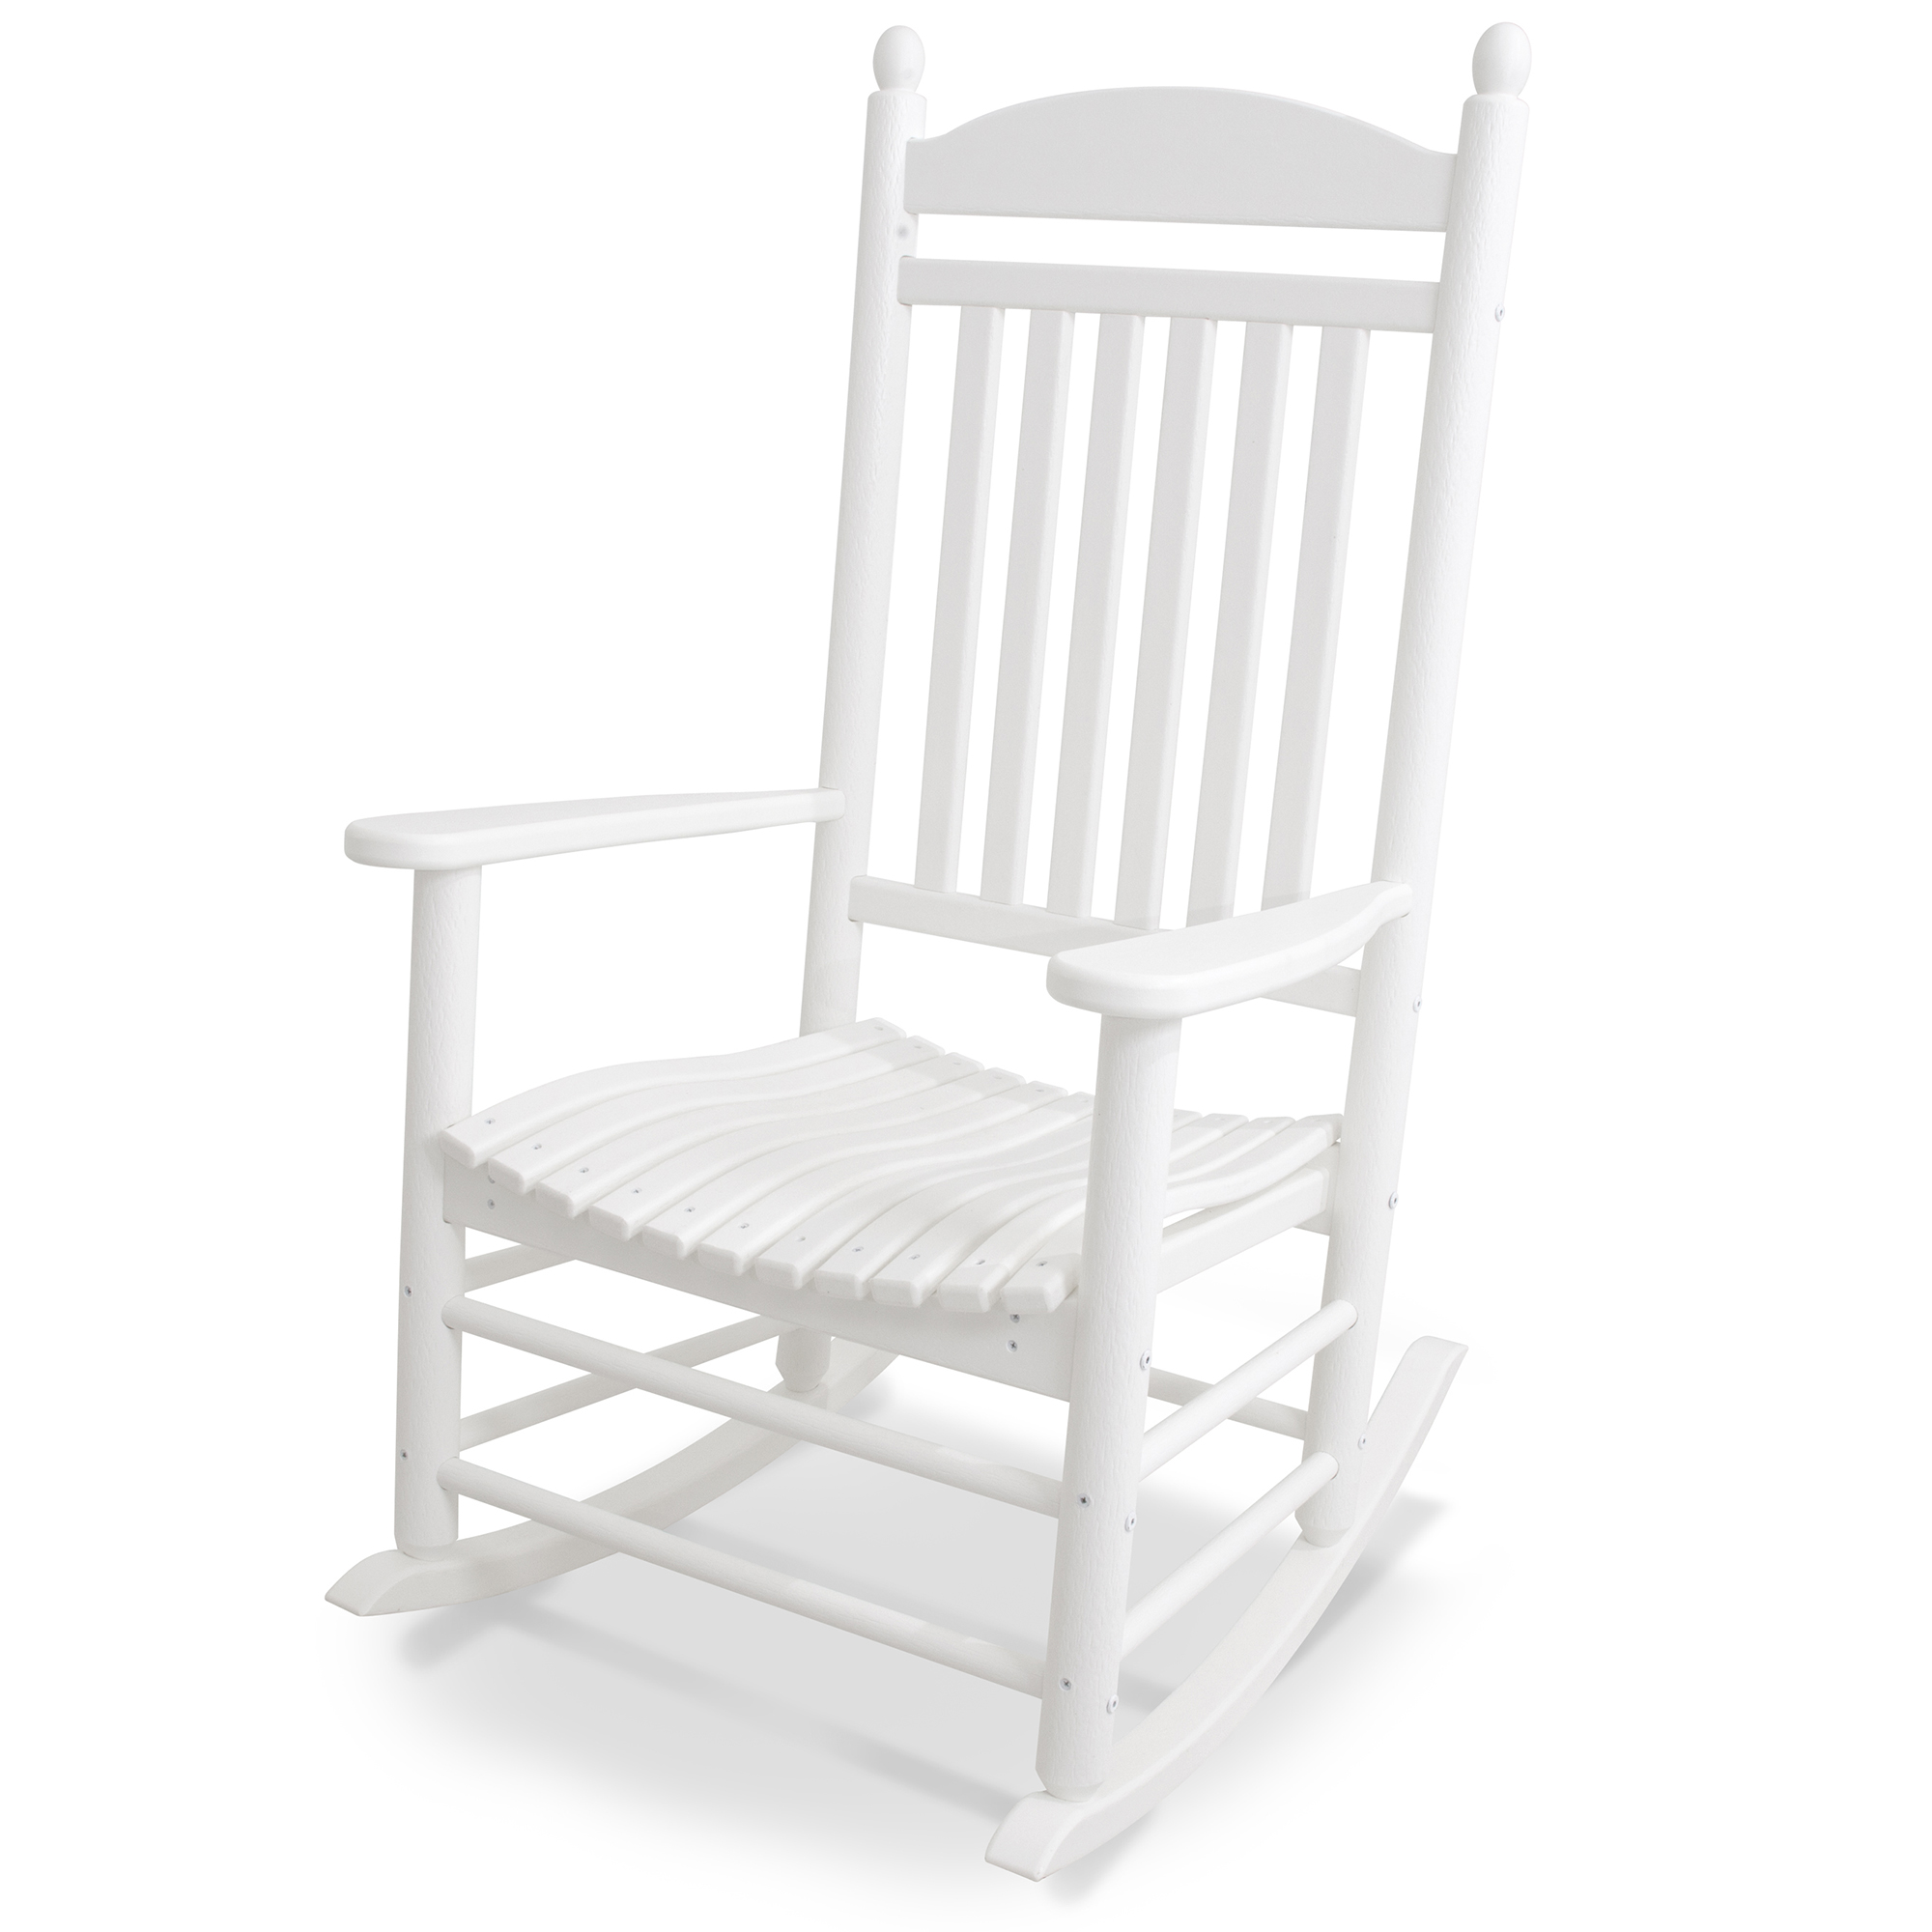 Fine Polywood All Weather Jefferson Slat Rocker Machost Co Dining Chair Design Ideas Machostcouk